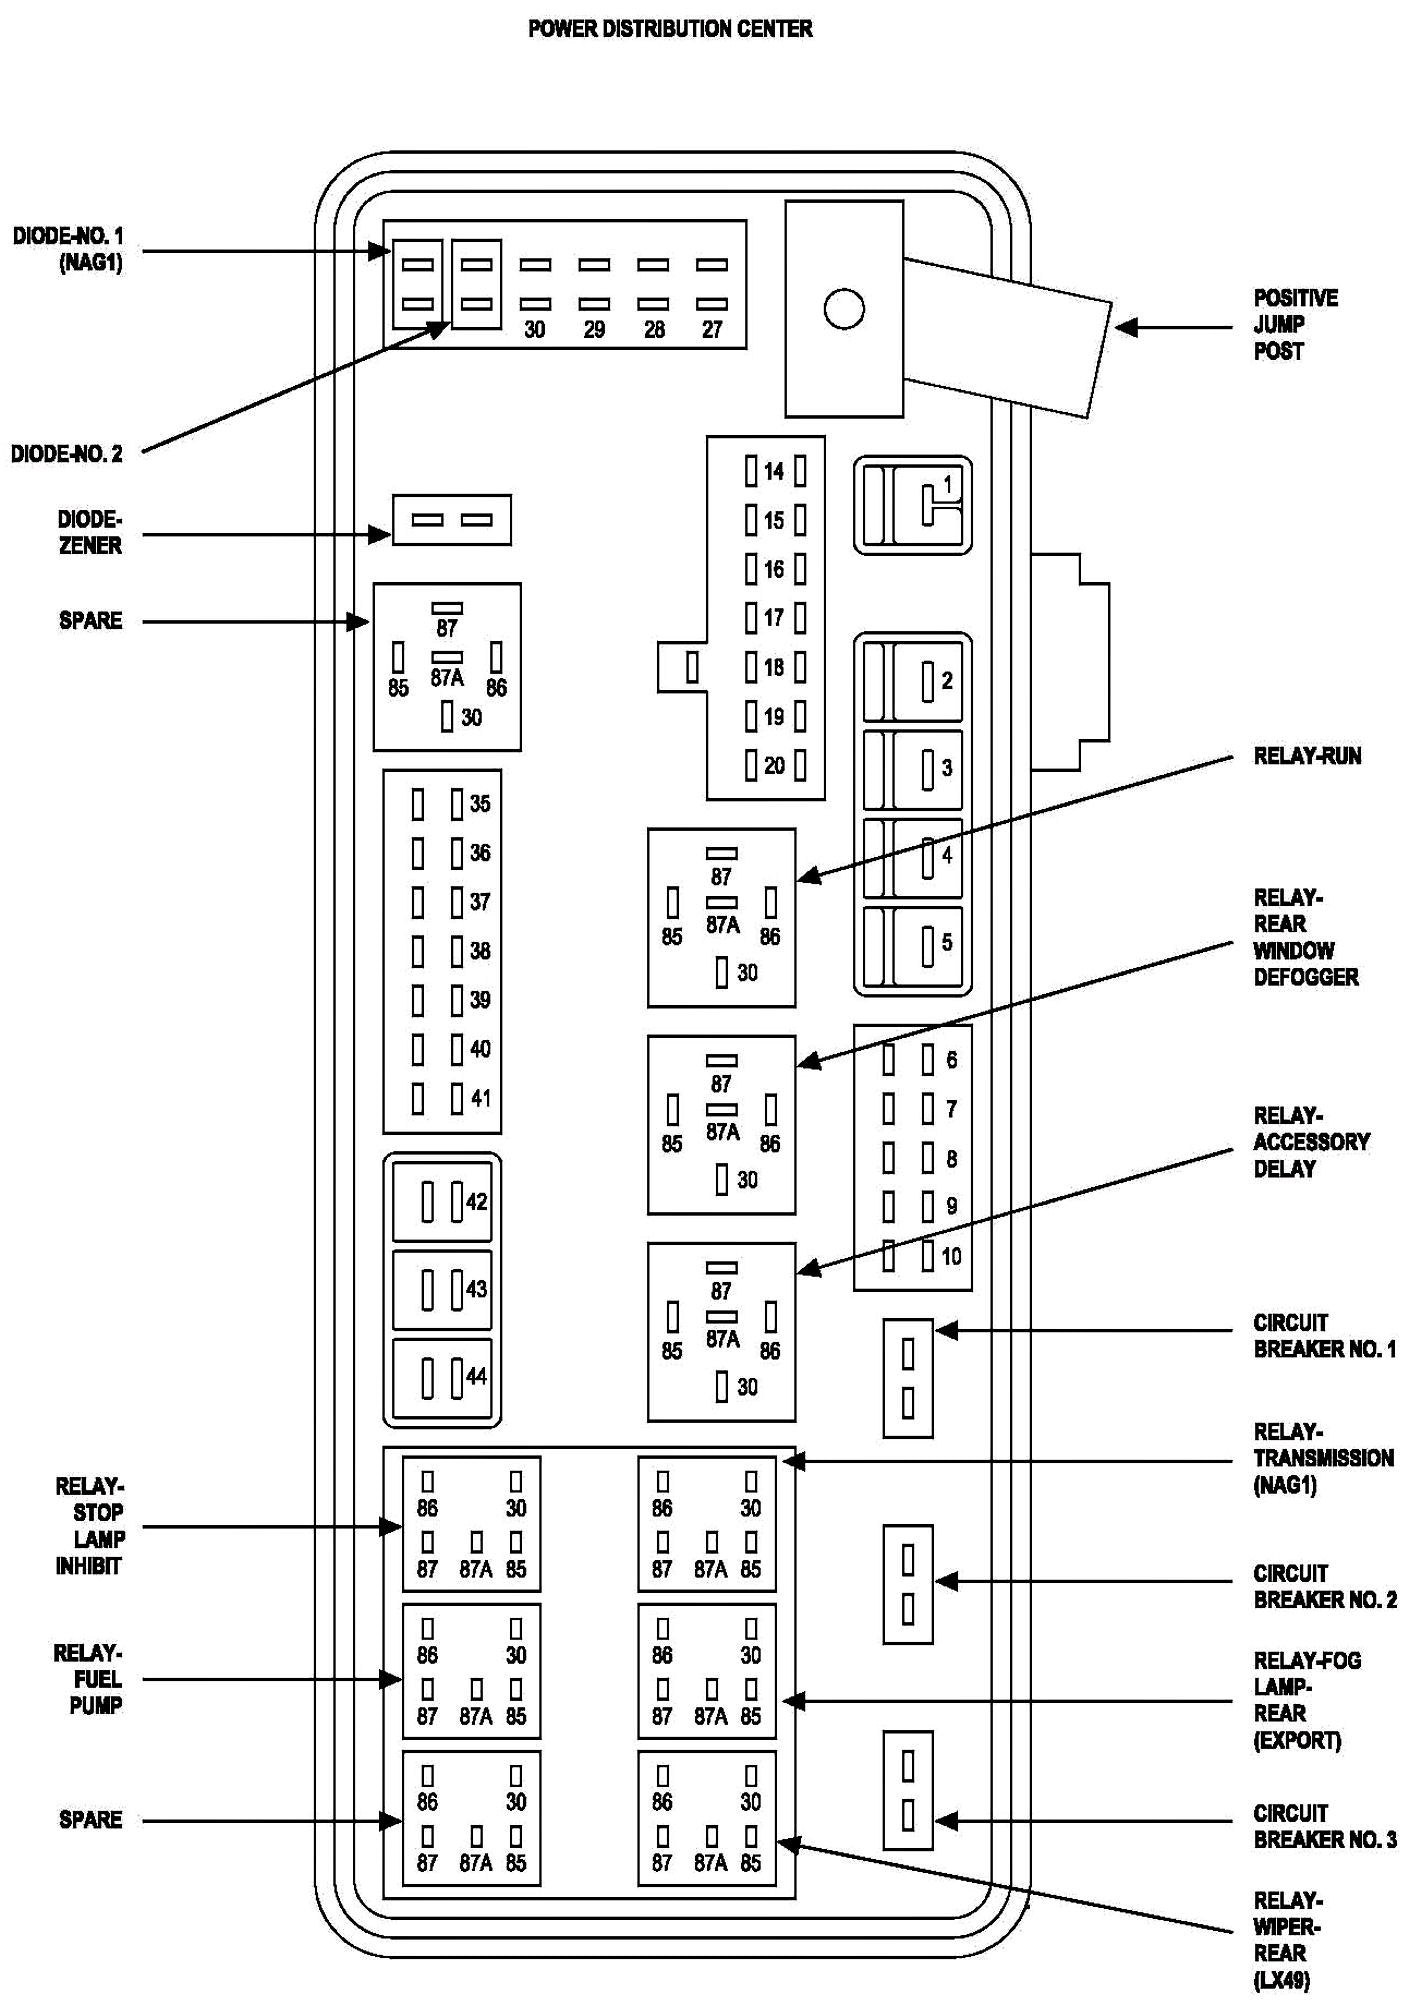 hight resolution of chrysler fuse box diagram wiring diagram expert chrysler sebring 2007 fuse diagram chrysler fuse diagram